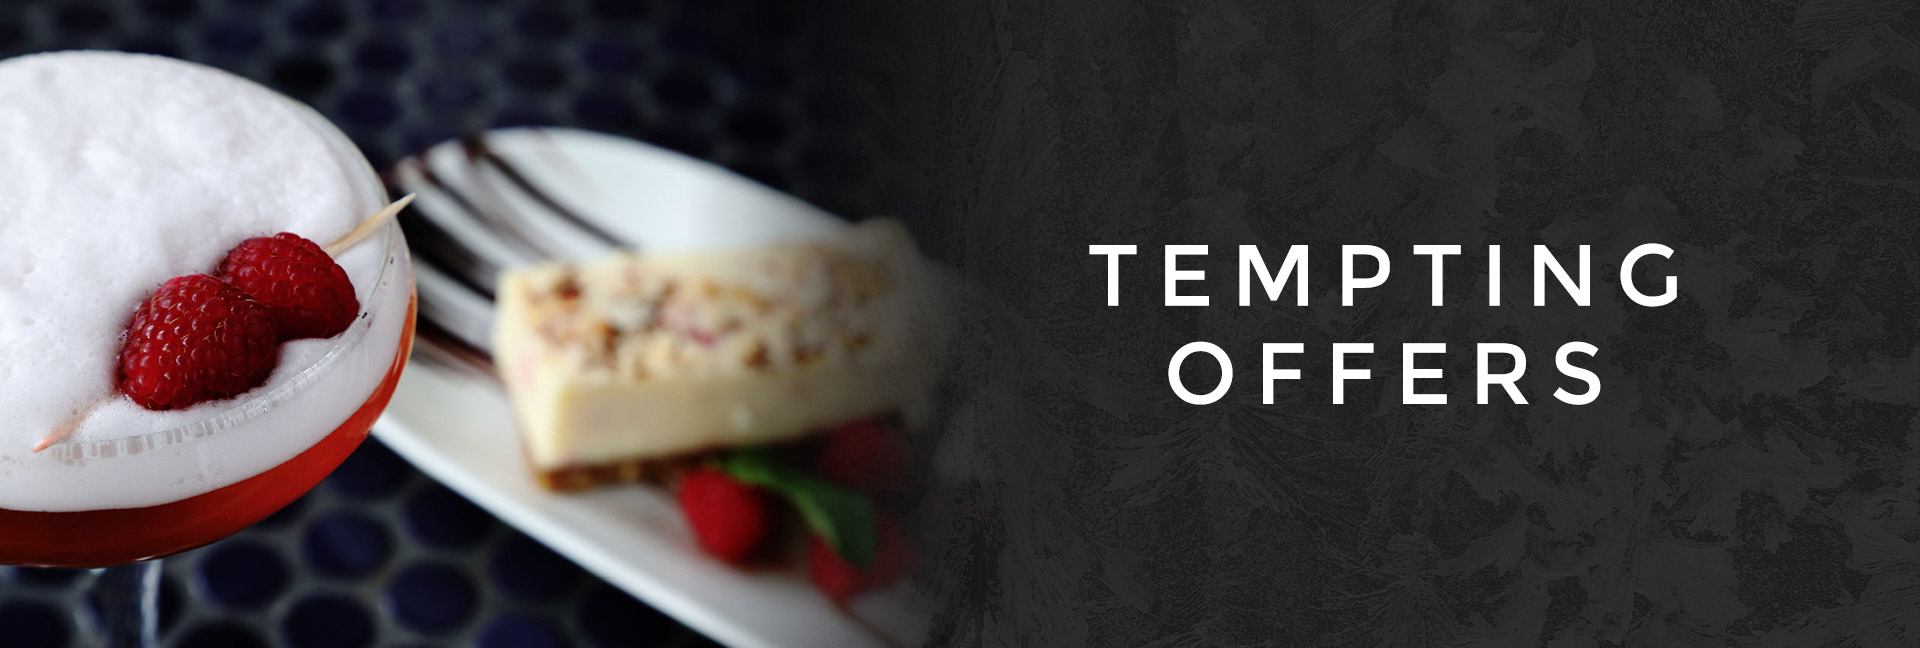 Temping offers at All Bar One Regent Street